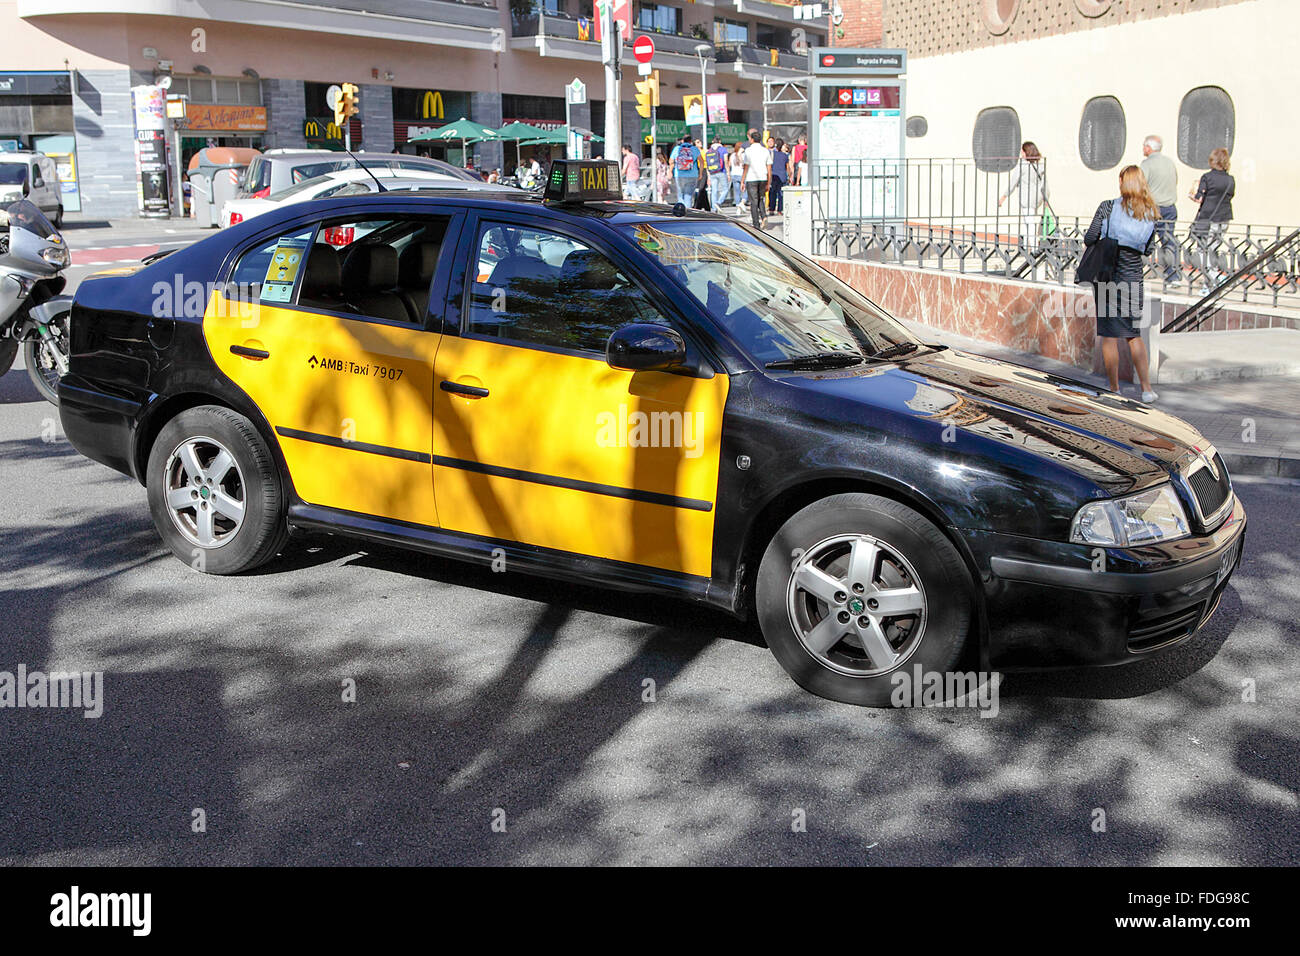 Black and yellow licensed taxi viewed here close to tourist hot spot Sagrada De Familia in Barcelona, Spain. - Stock Image